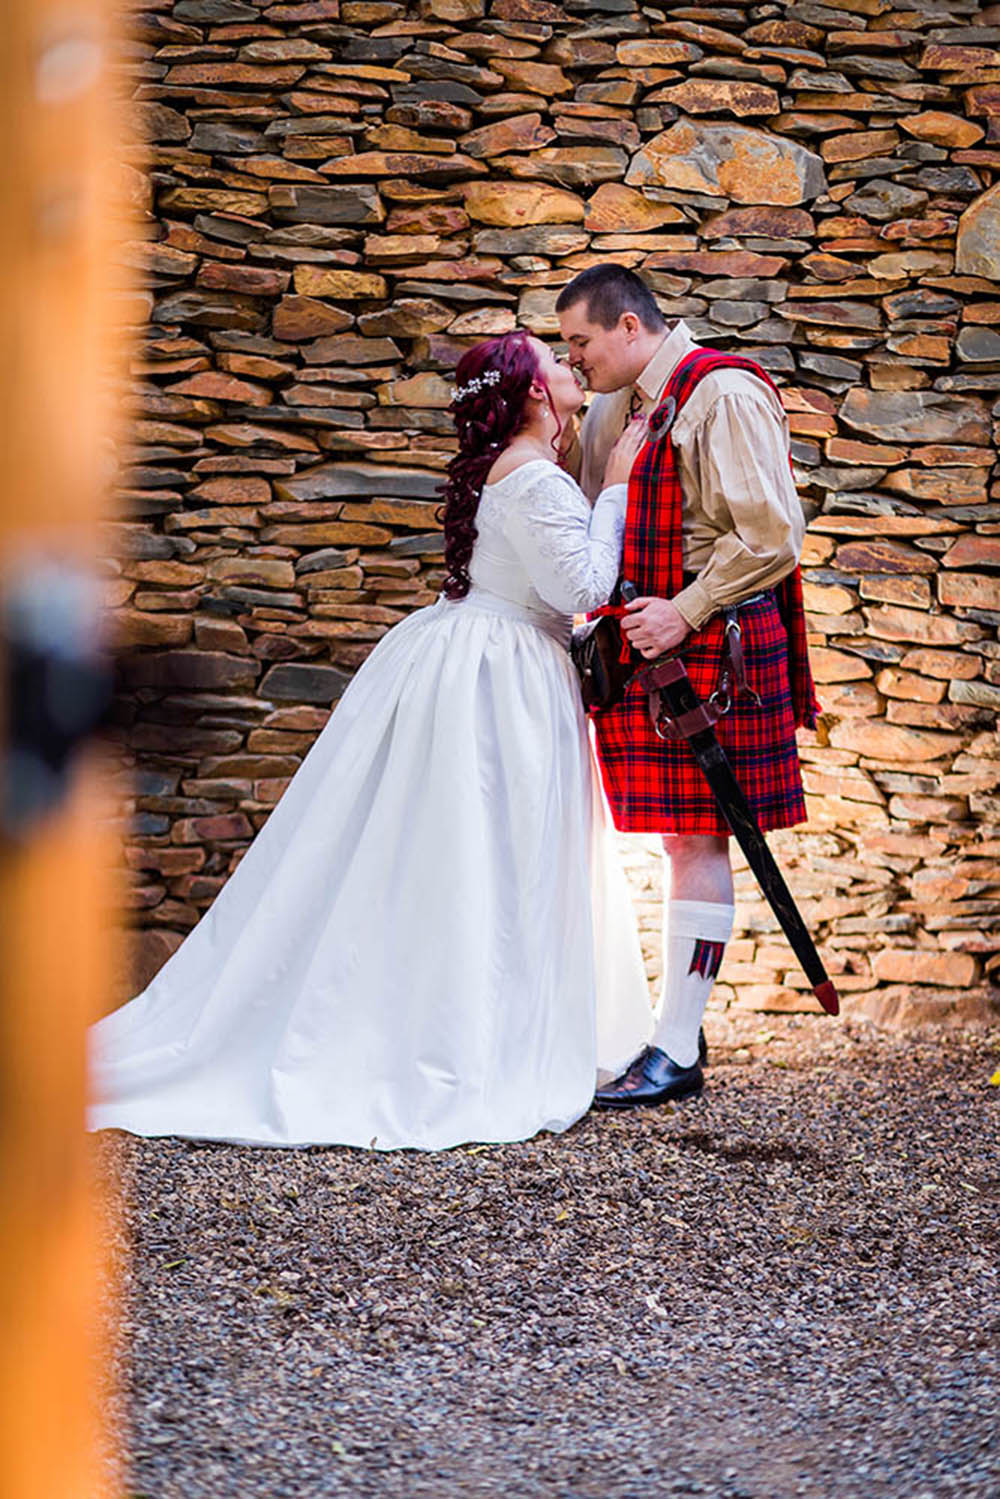 medieval-themed-wedding-medieval-wedding-dgr-photography-castle-wedding-92